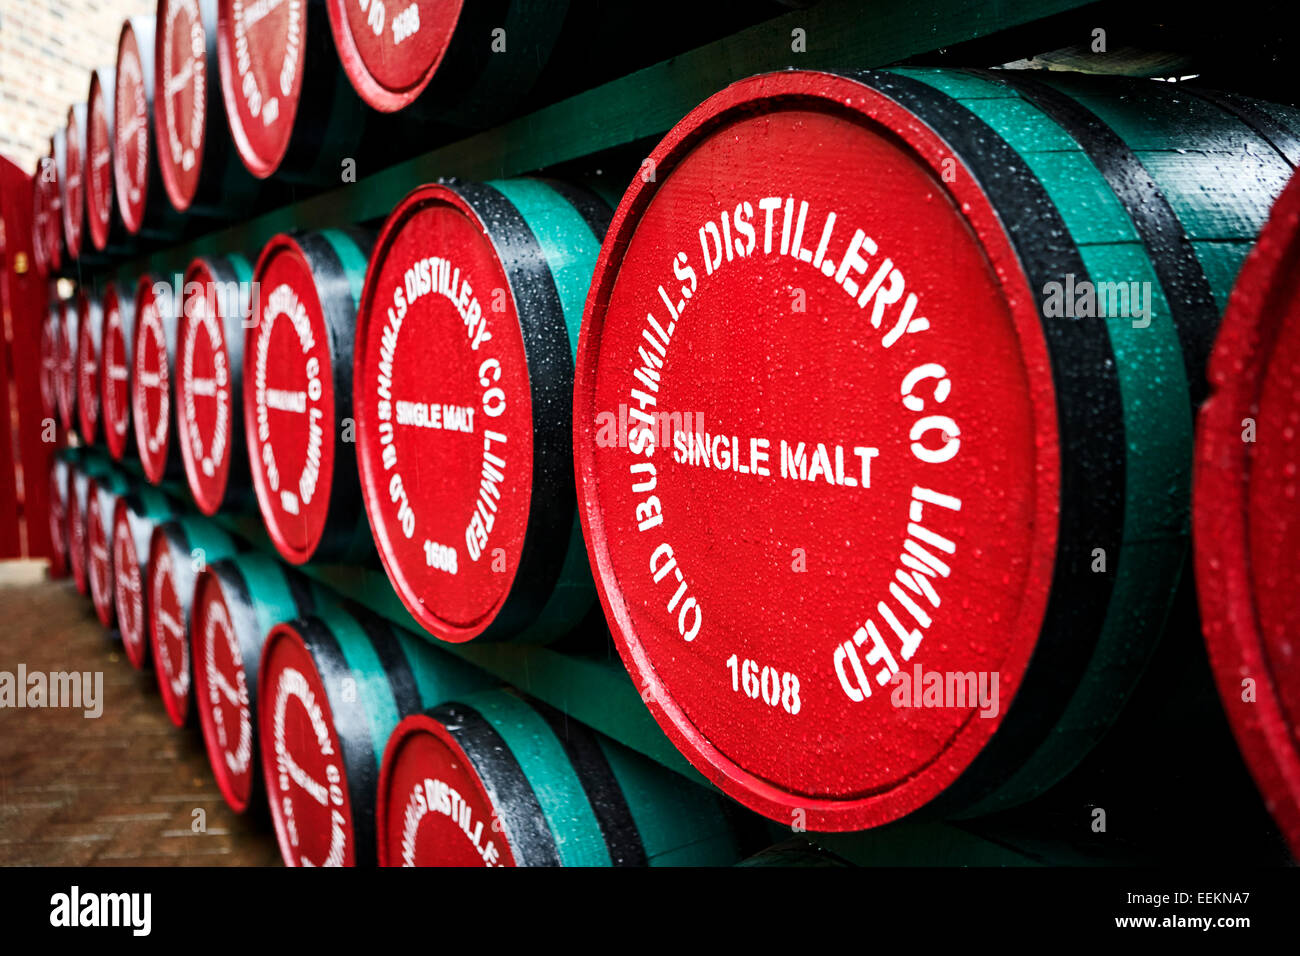 single malt whiskey barrels of old bushmills distillery northern ireland - Stock Image